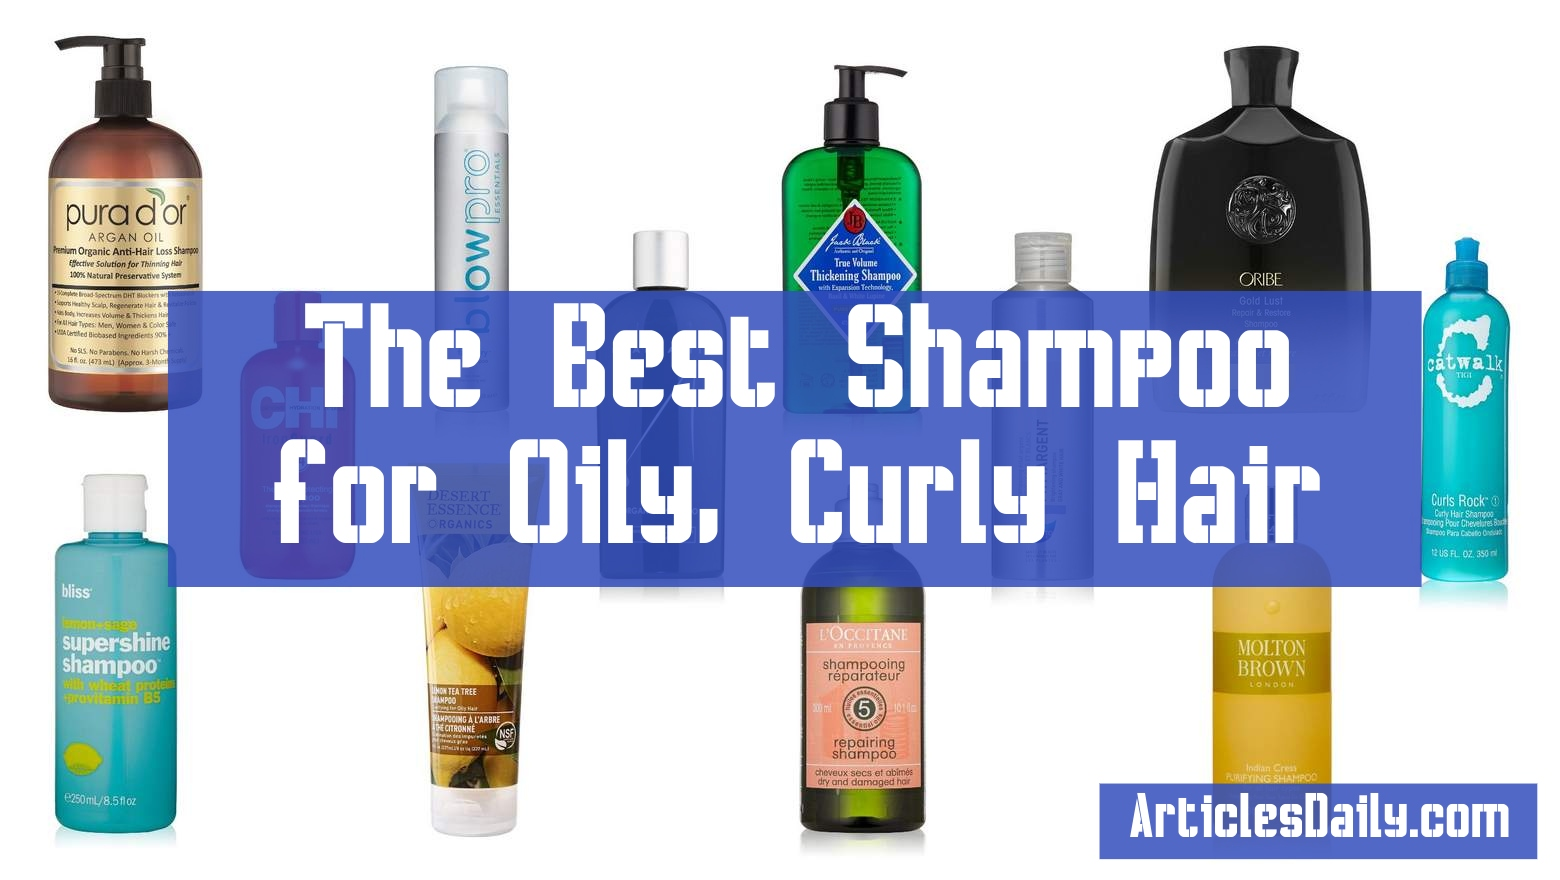 The Best Shampoo for Oily, Curly Hair